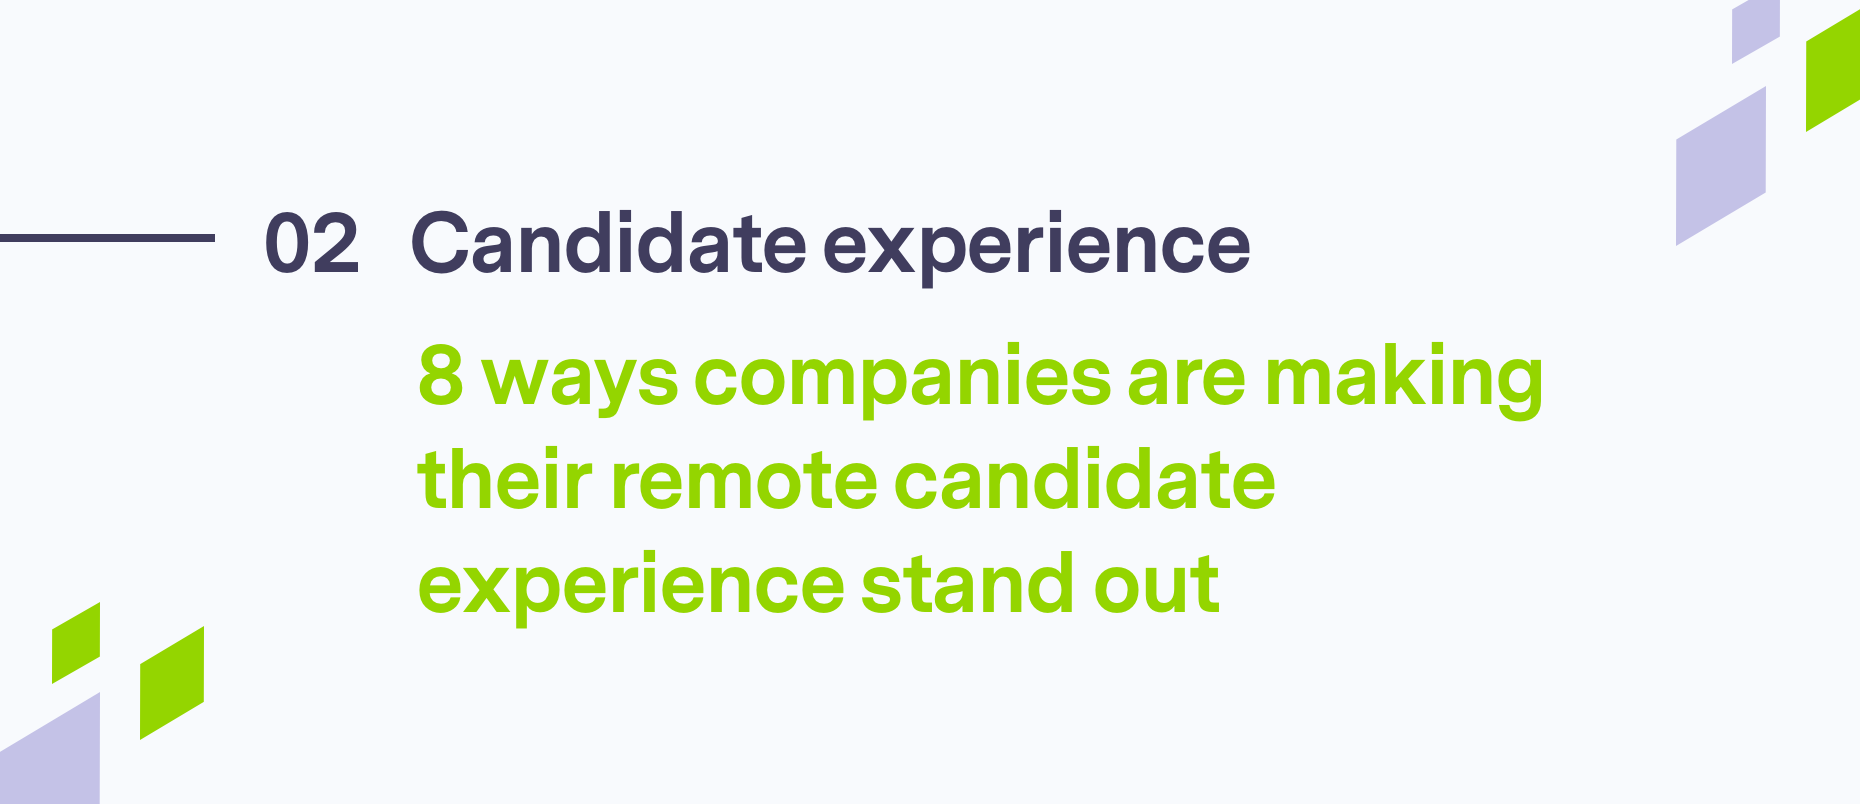 8 Ways Companies Are Making Their Remote Candidate Experience Stand Out